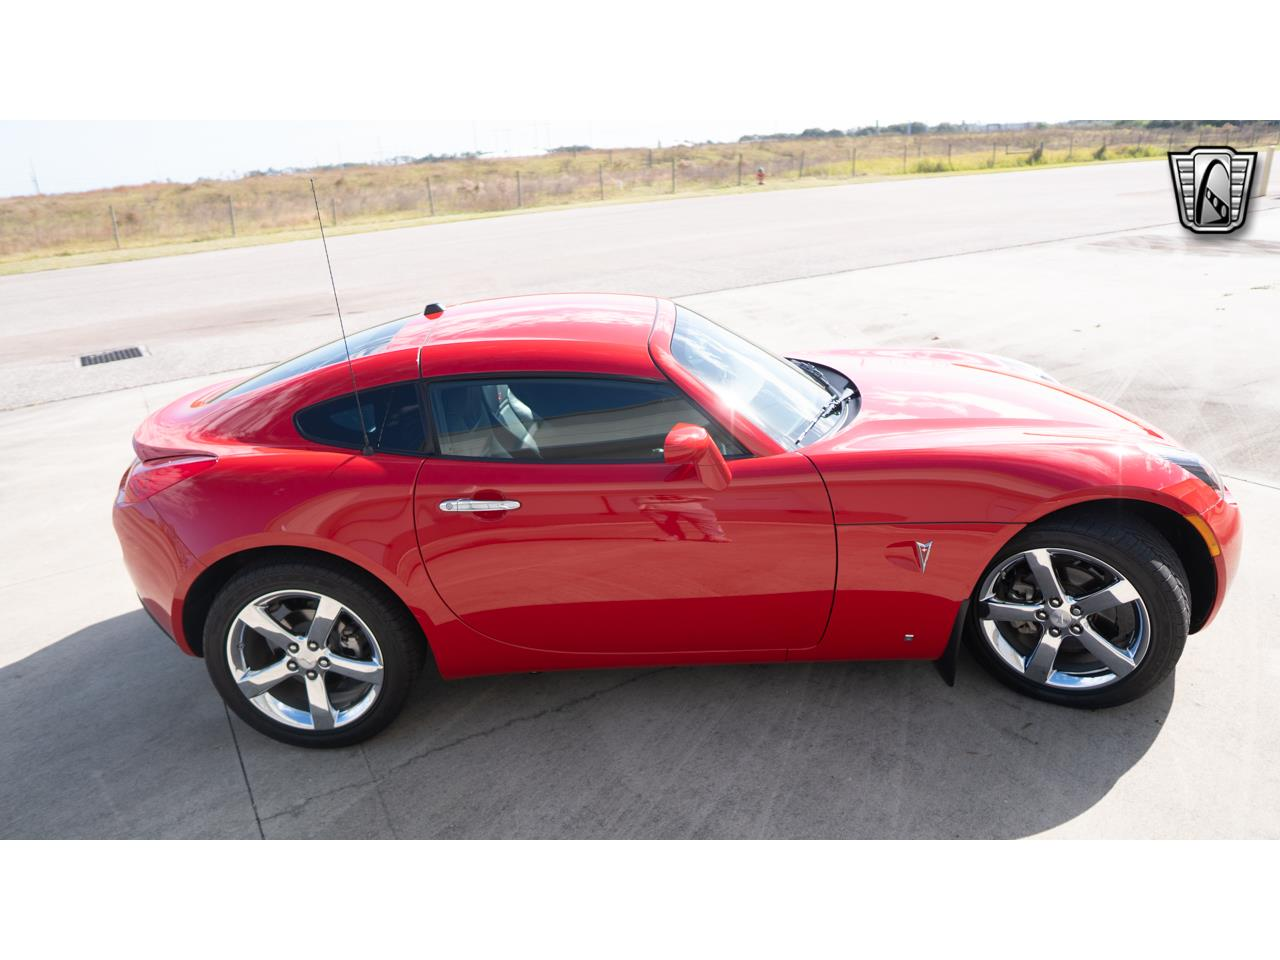 2009 Pontiac Solstice (CC-1342846) for sale in O'Fallon, Illinois